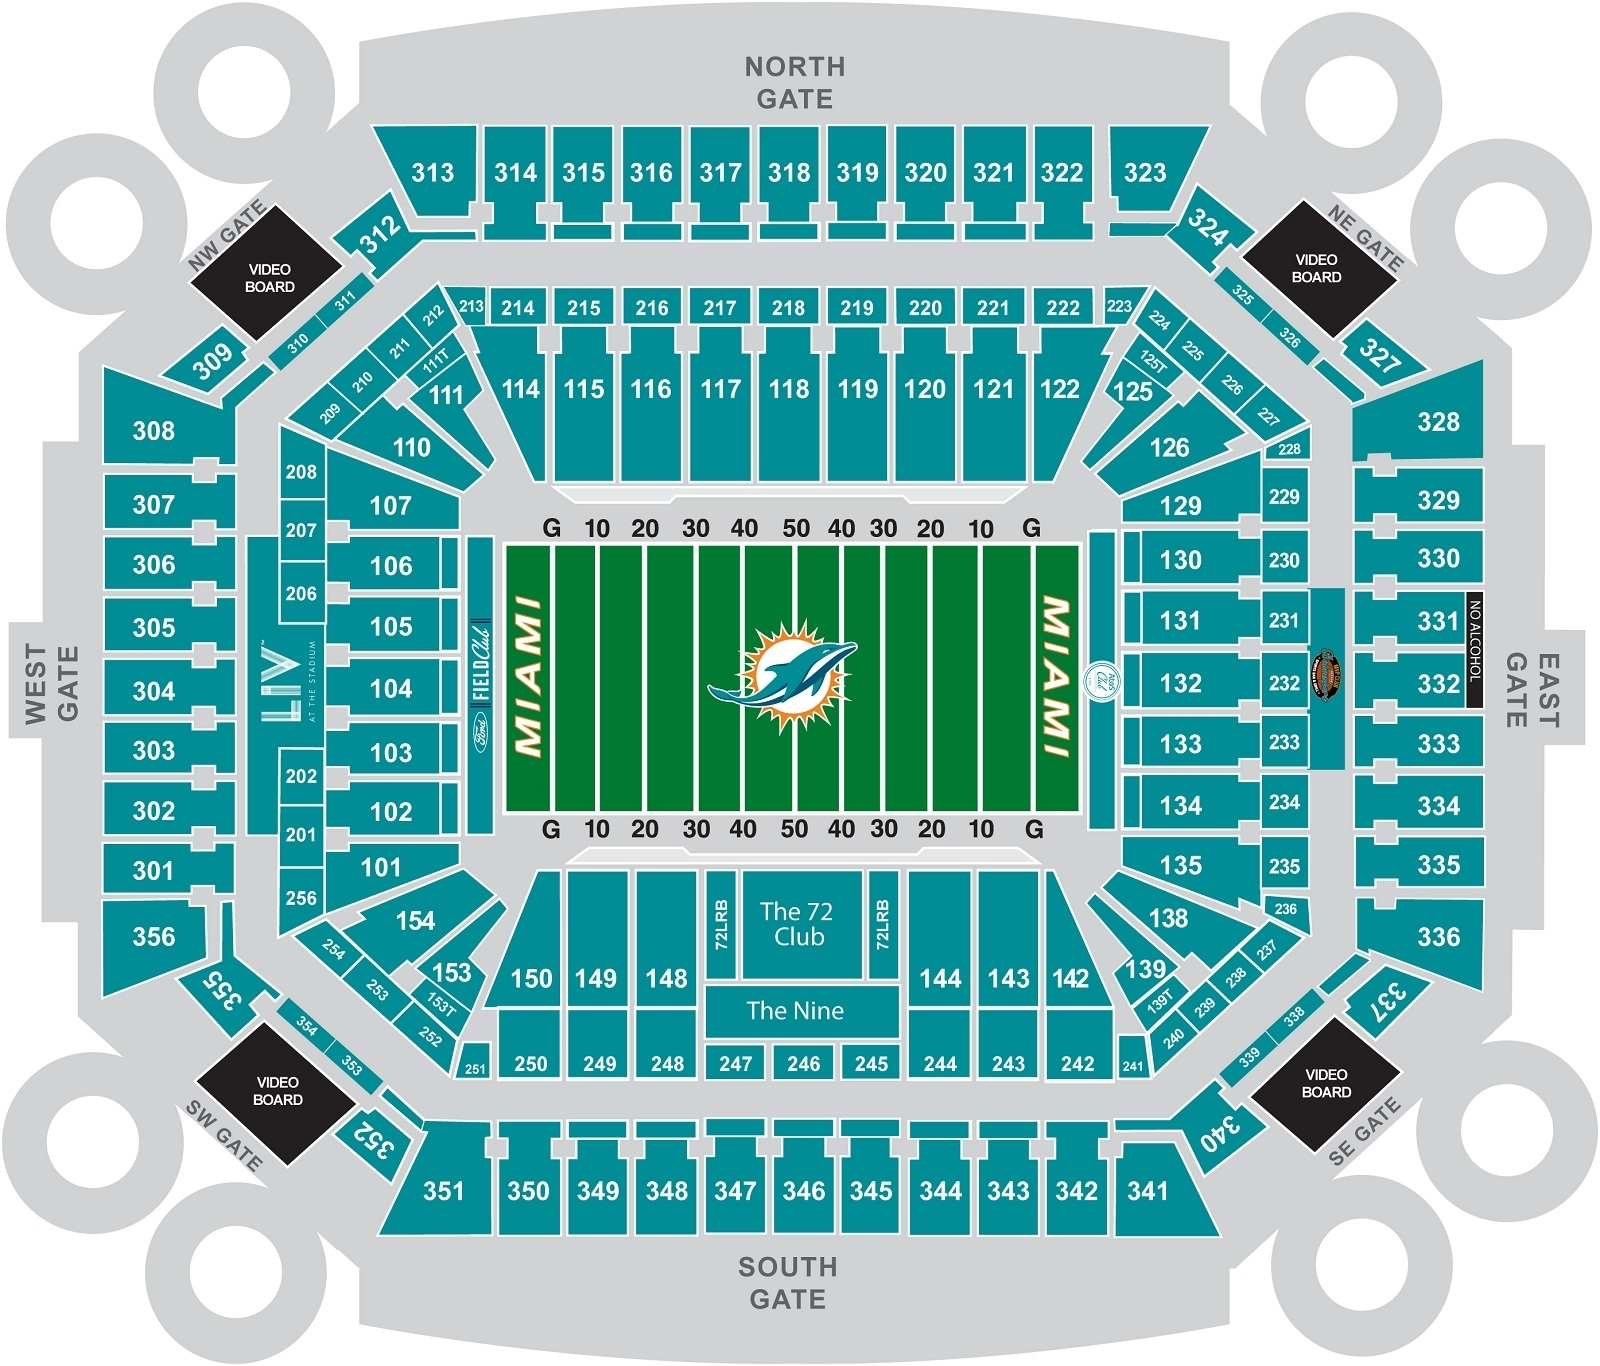 2020 Super Bowl Seating Chart   February 2, 2020   Fan intended for Super Bowl Seating Chart Seat Numbers